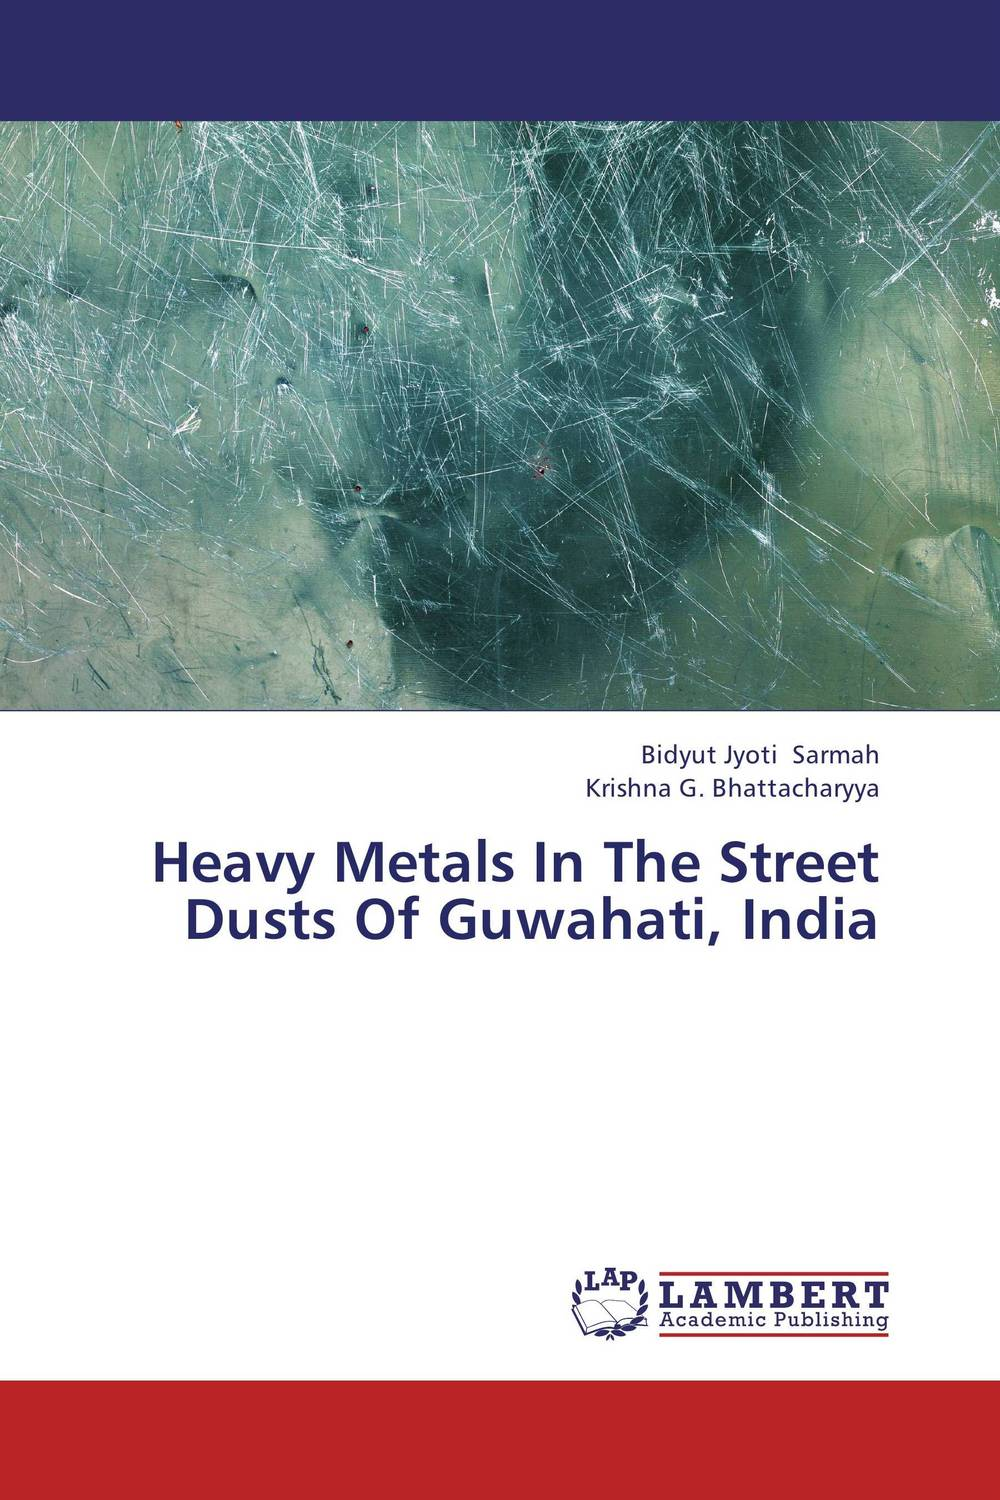 Heavy Metals In The Street Dusts Of Guwahati, India marwan a ibrahim effect of heavy metals on haematological and testicular functions